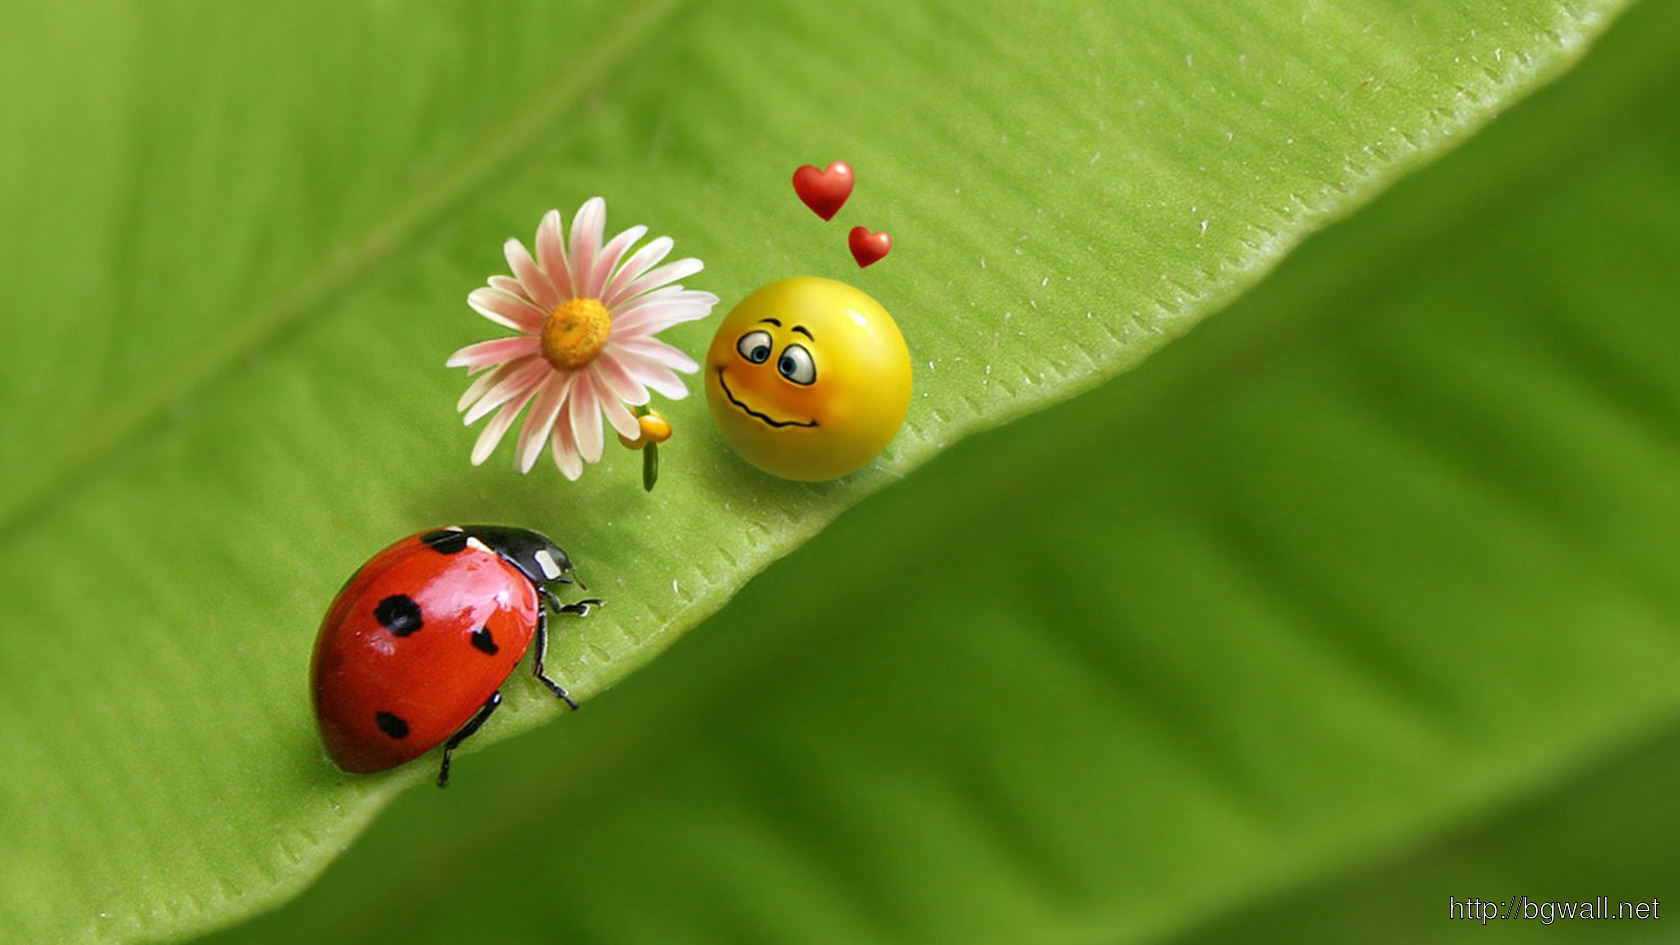 Download Ladybug And Smiley Face In Love Wallpaper - Background Wallpaper HD